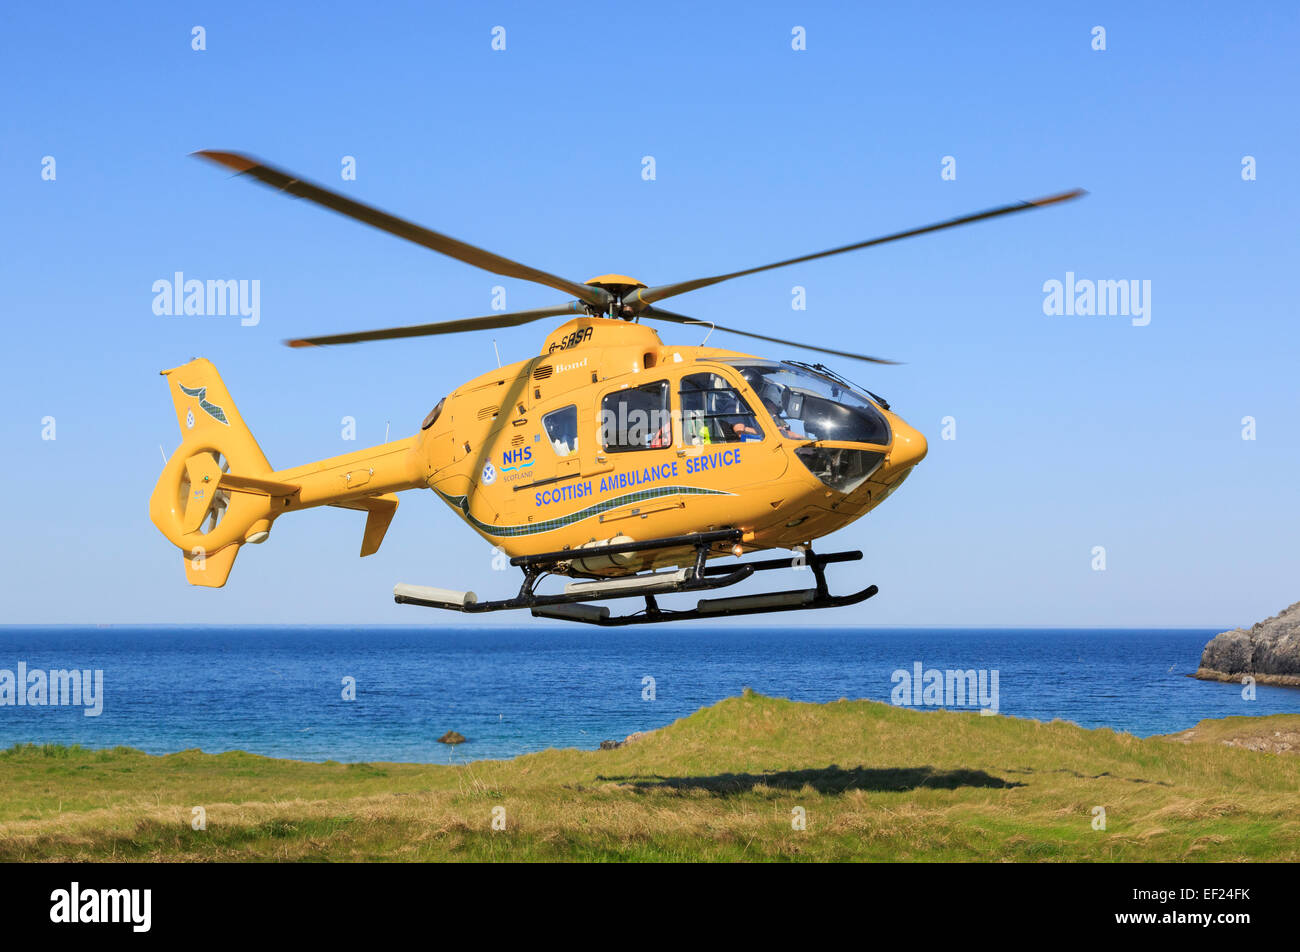 Scottish Air Ambulance Service Helicopter taking off after a rescue mission on remote North West Highlands coast. - Stock Image